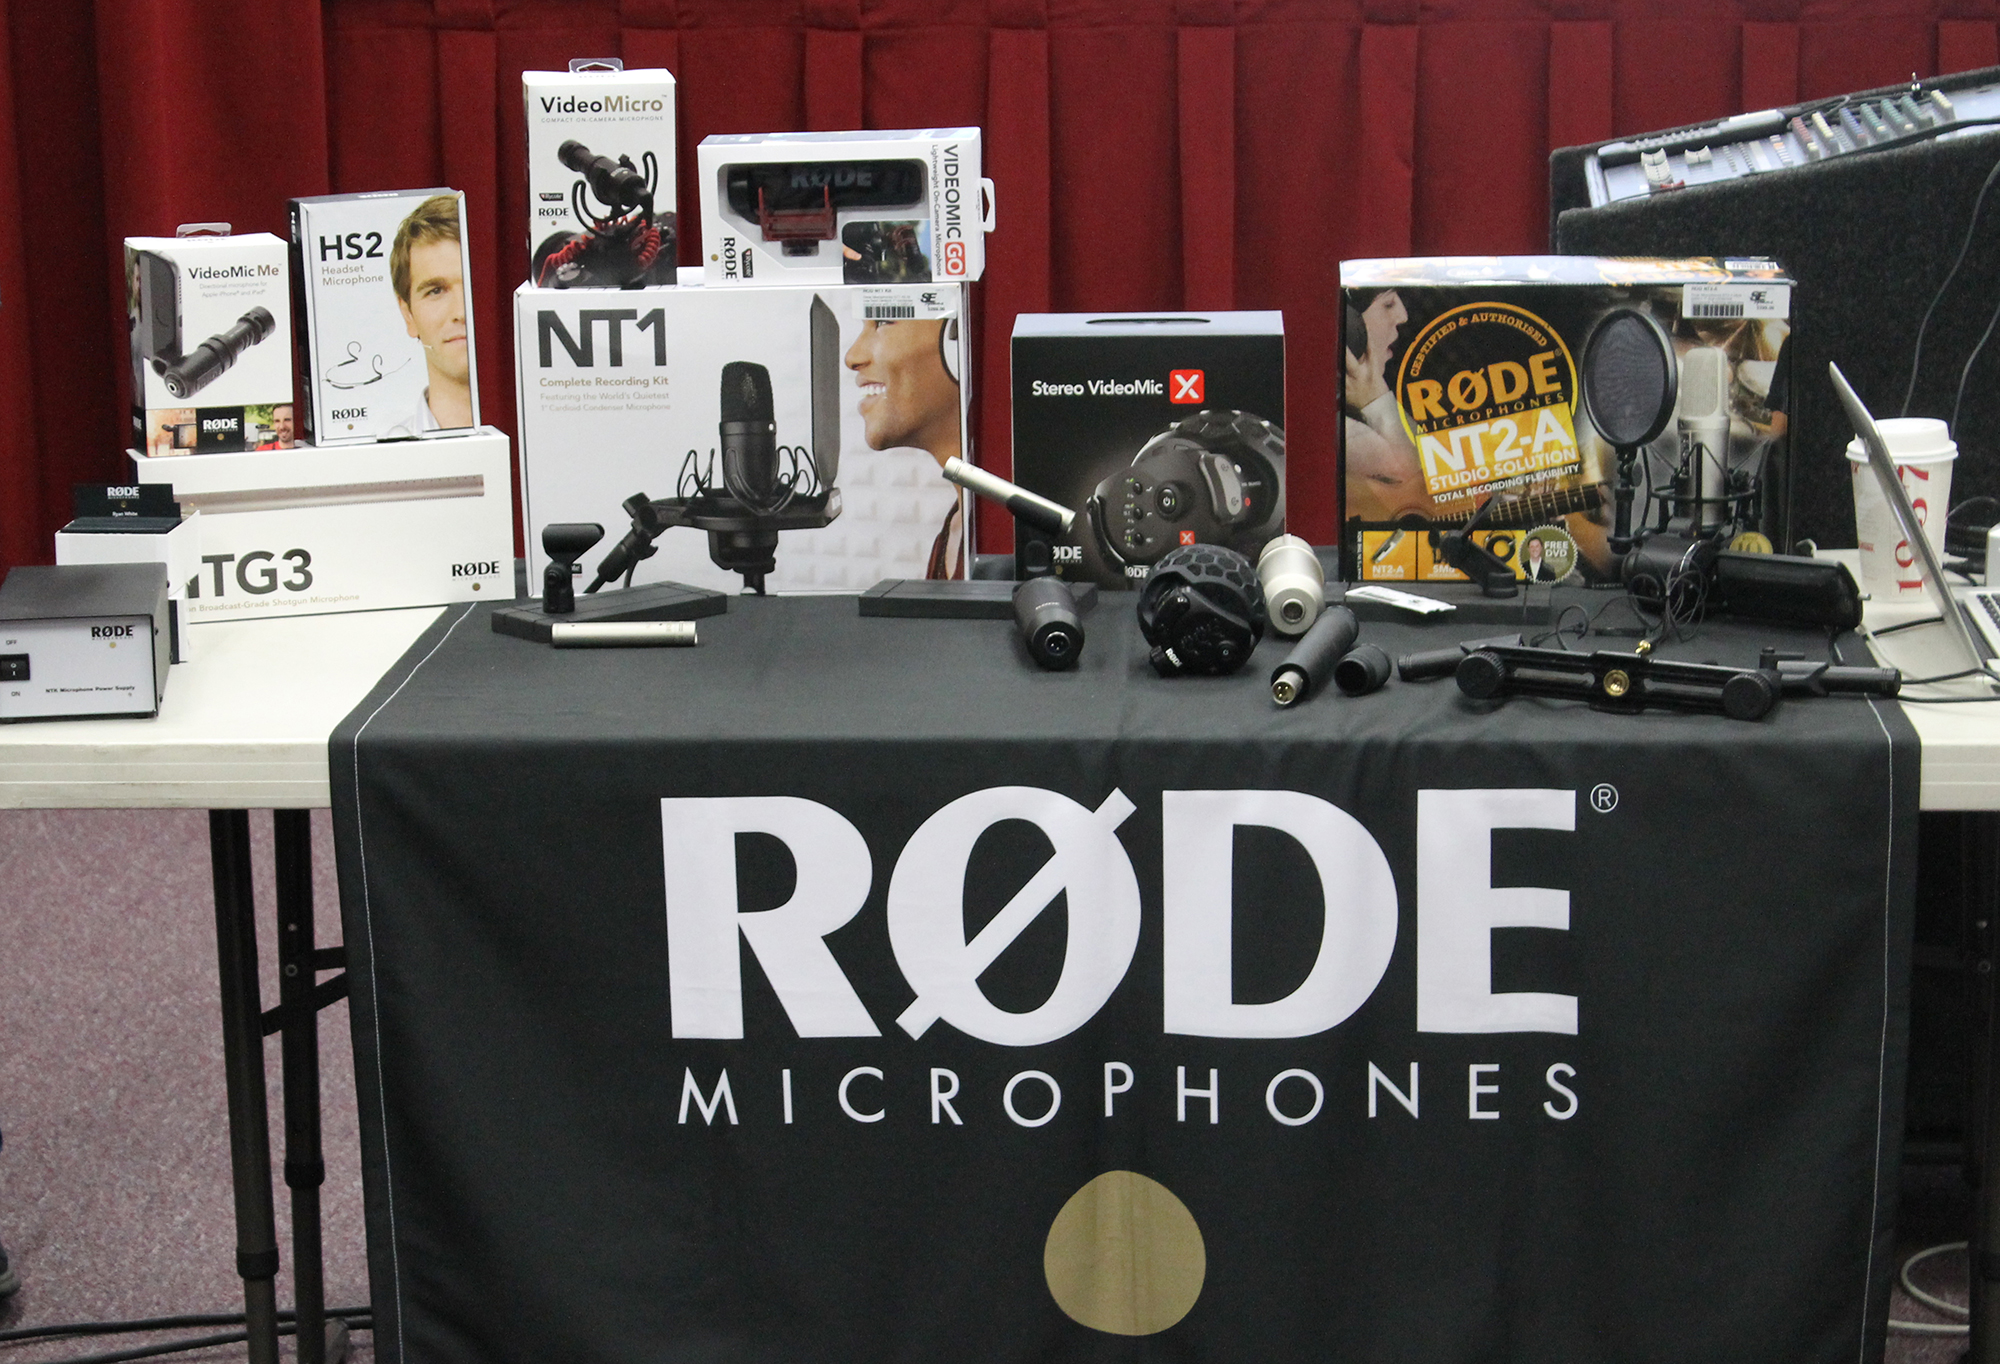 Rode Microphones at SE Systems